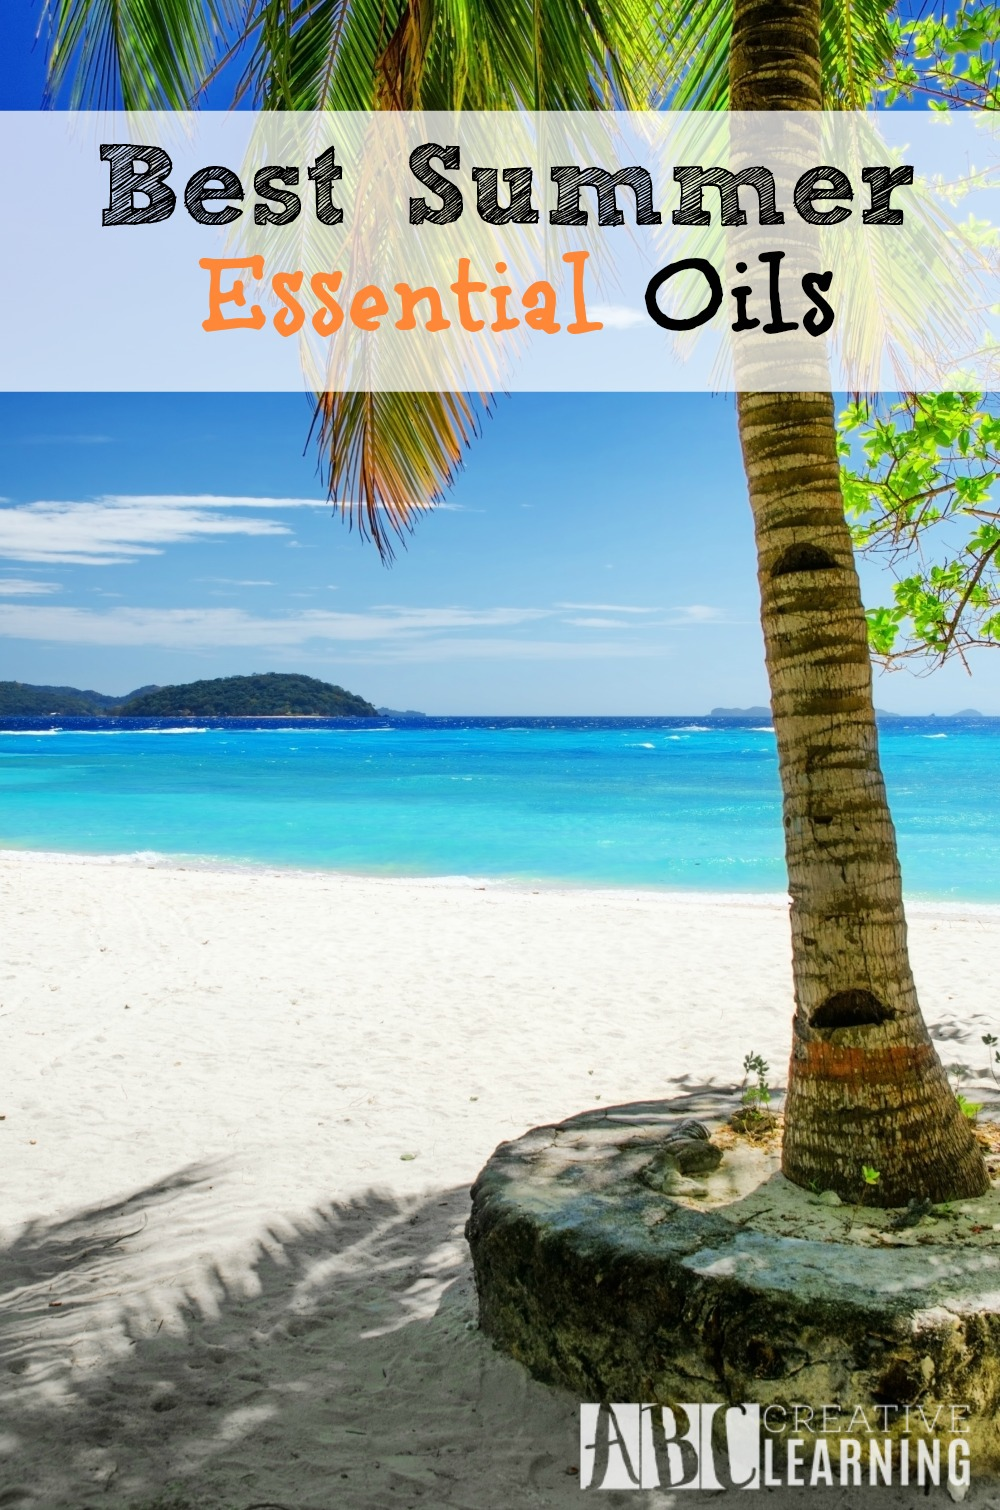 Best Summer Essential Oils you should have in your home to clean or keep away bugs. - abccreativelearning.com